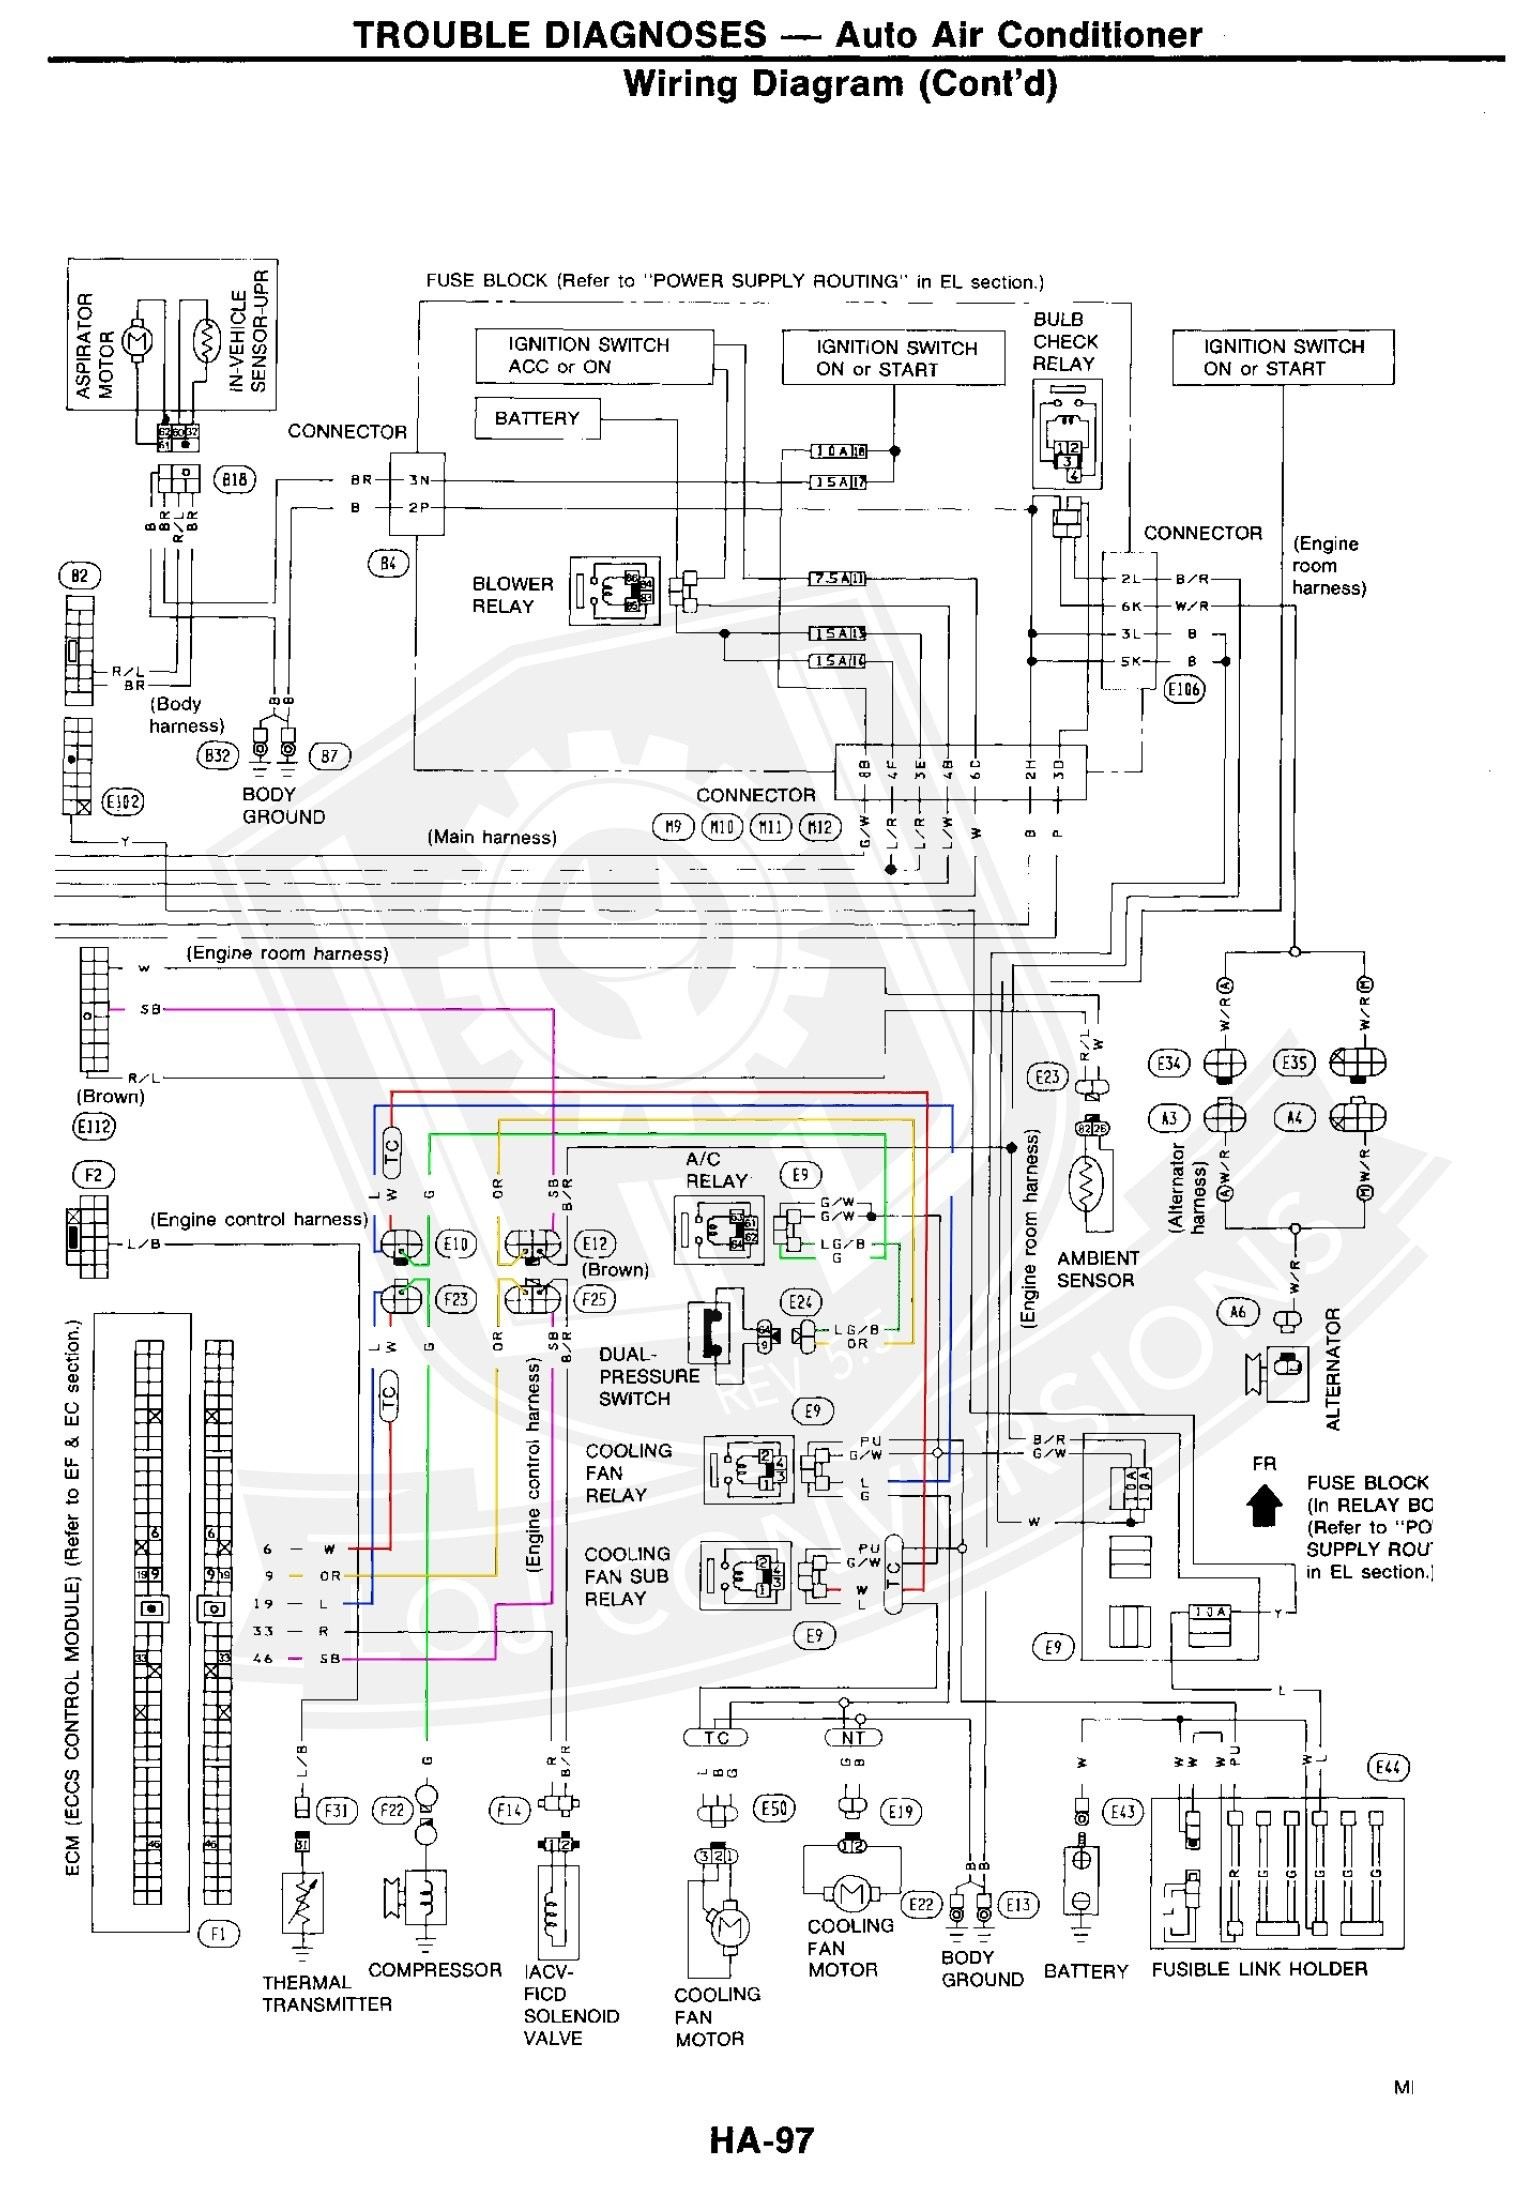 nissan 300zx wiring diagram harness wire center u2022 rh wattatech co 1983 Nissan 300ZX 1987 Nissan 300ZX